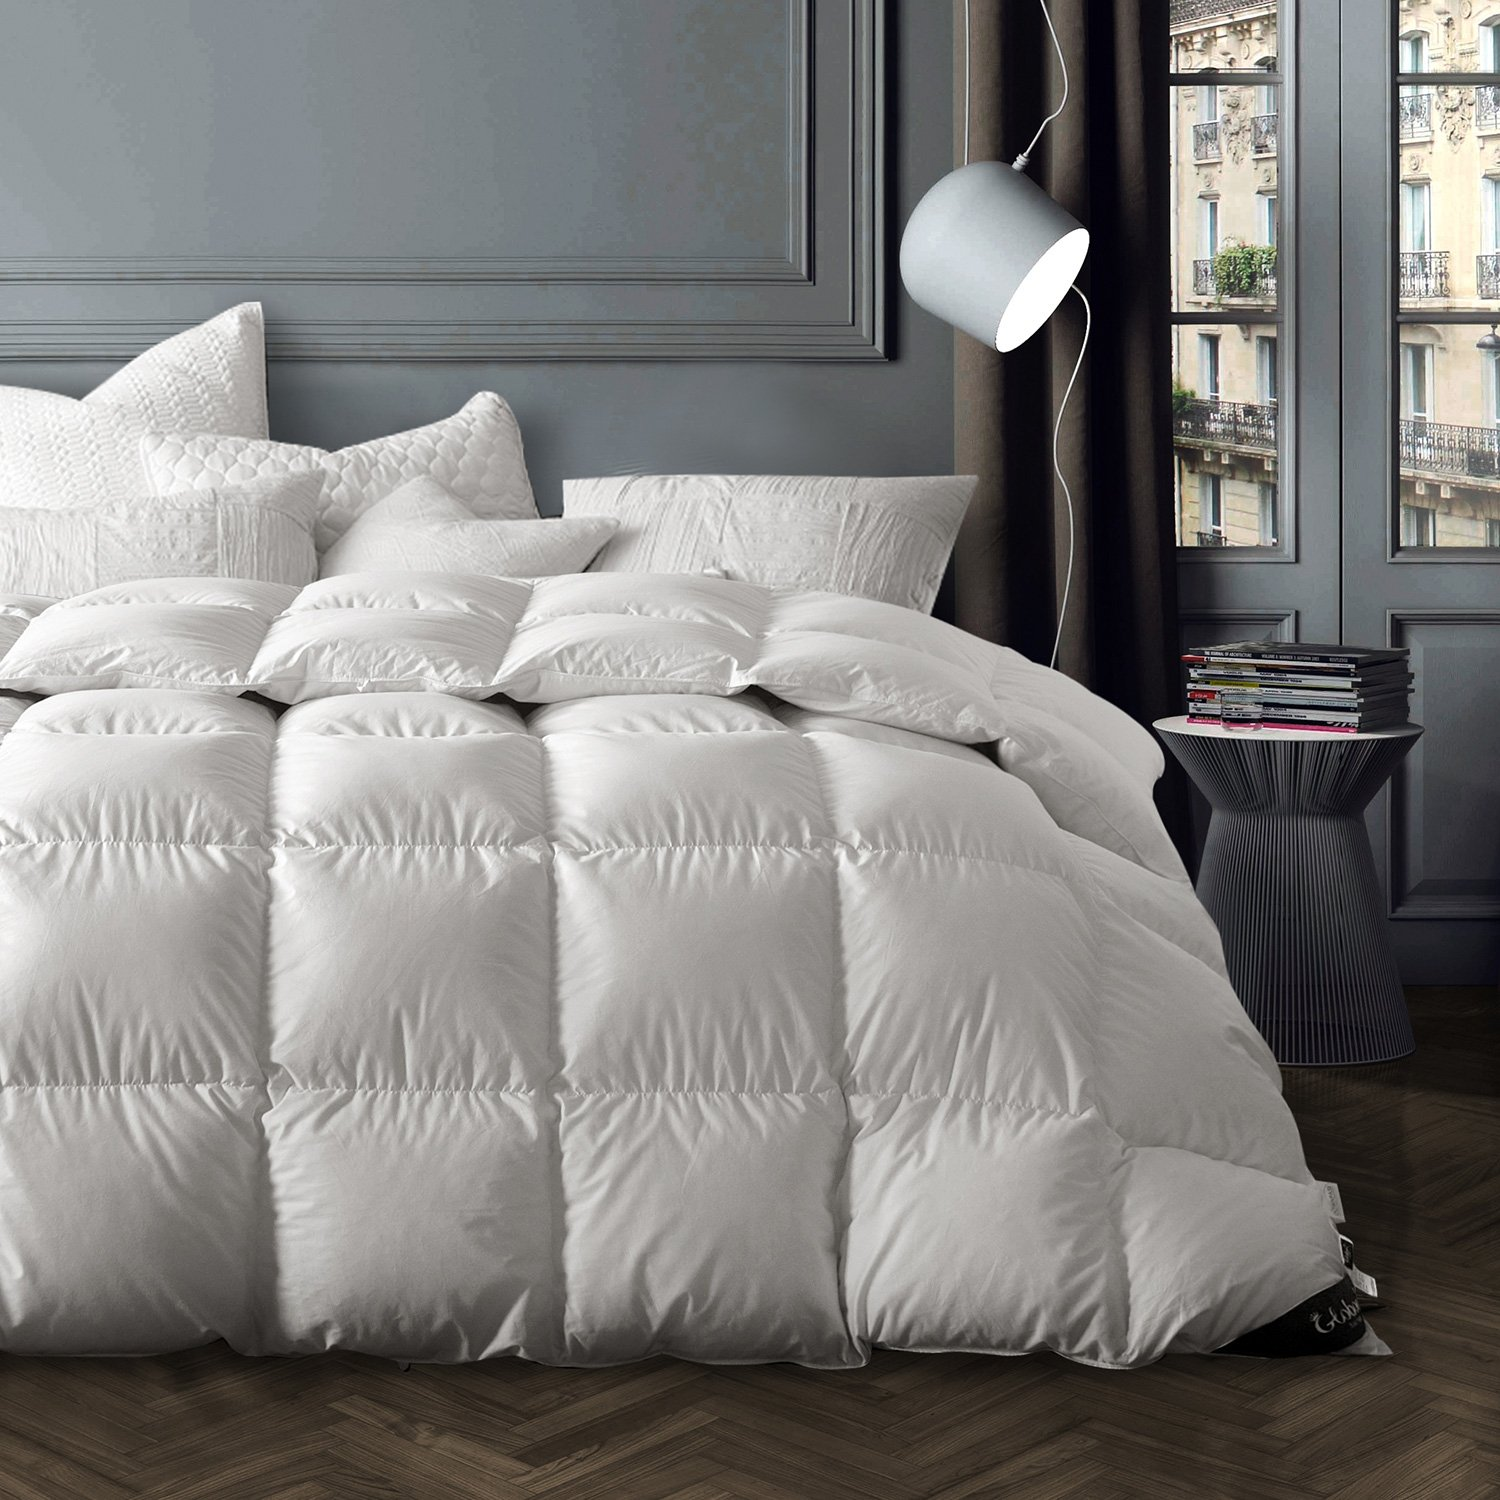 Globon Washable Texcote Nano-Treated White Goose Down Comforter Queen/Full Size, 50 OZ Fill Weight, 700 Fill Power, 400 Thread Count 100% Cotton Shell, White by Globon